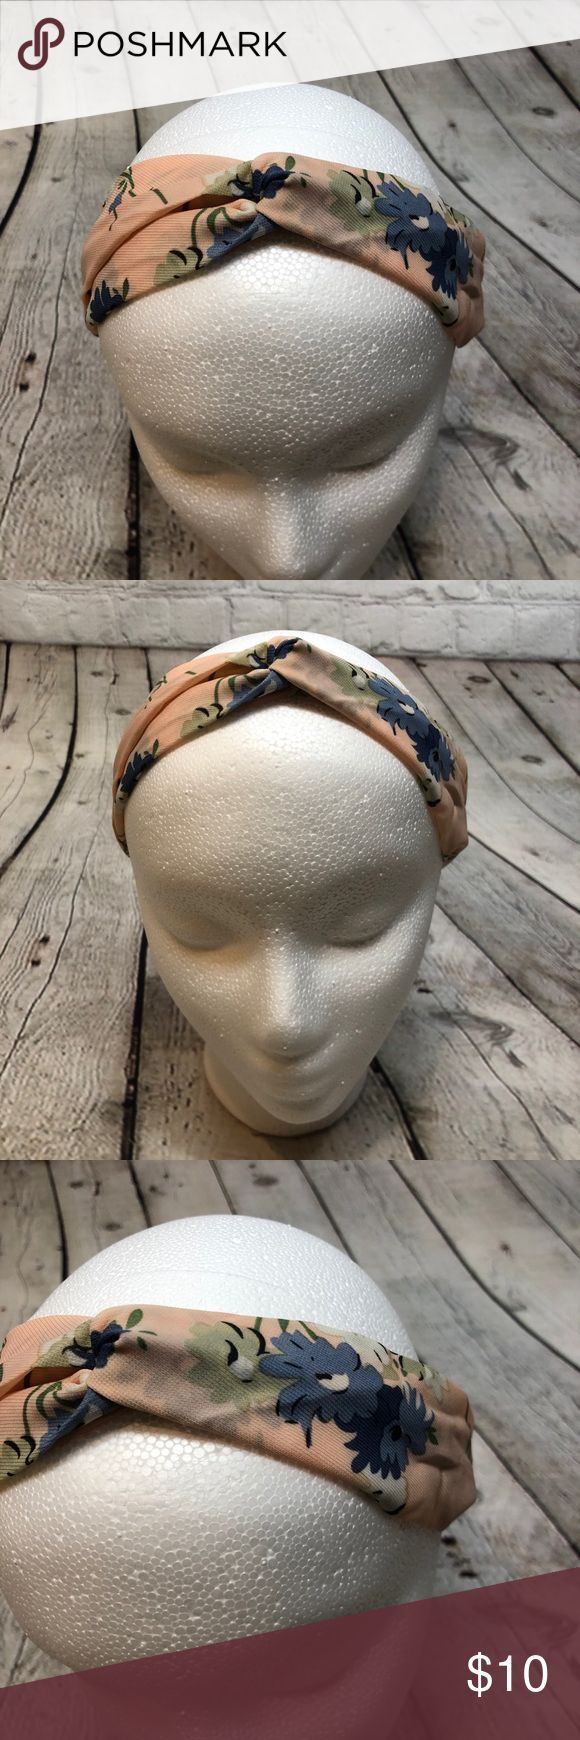 Knotted Boho Headband Pink Floral Flowers This knotted headband is super cute. It has elastic inside the fabric and it's stretchy and comfortable. T